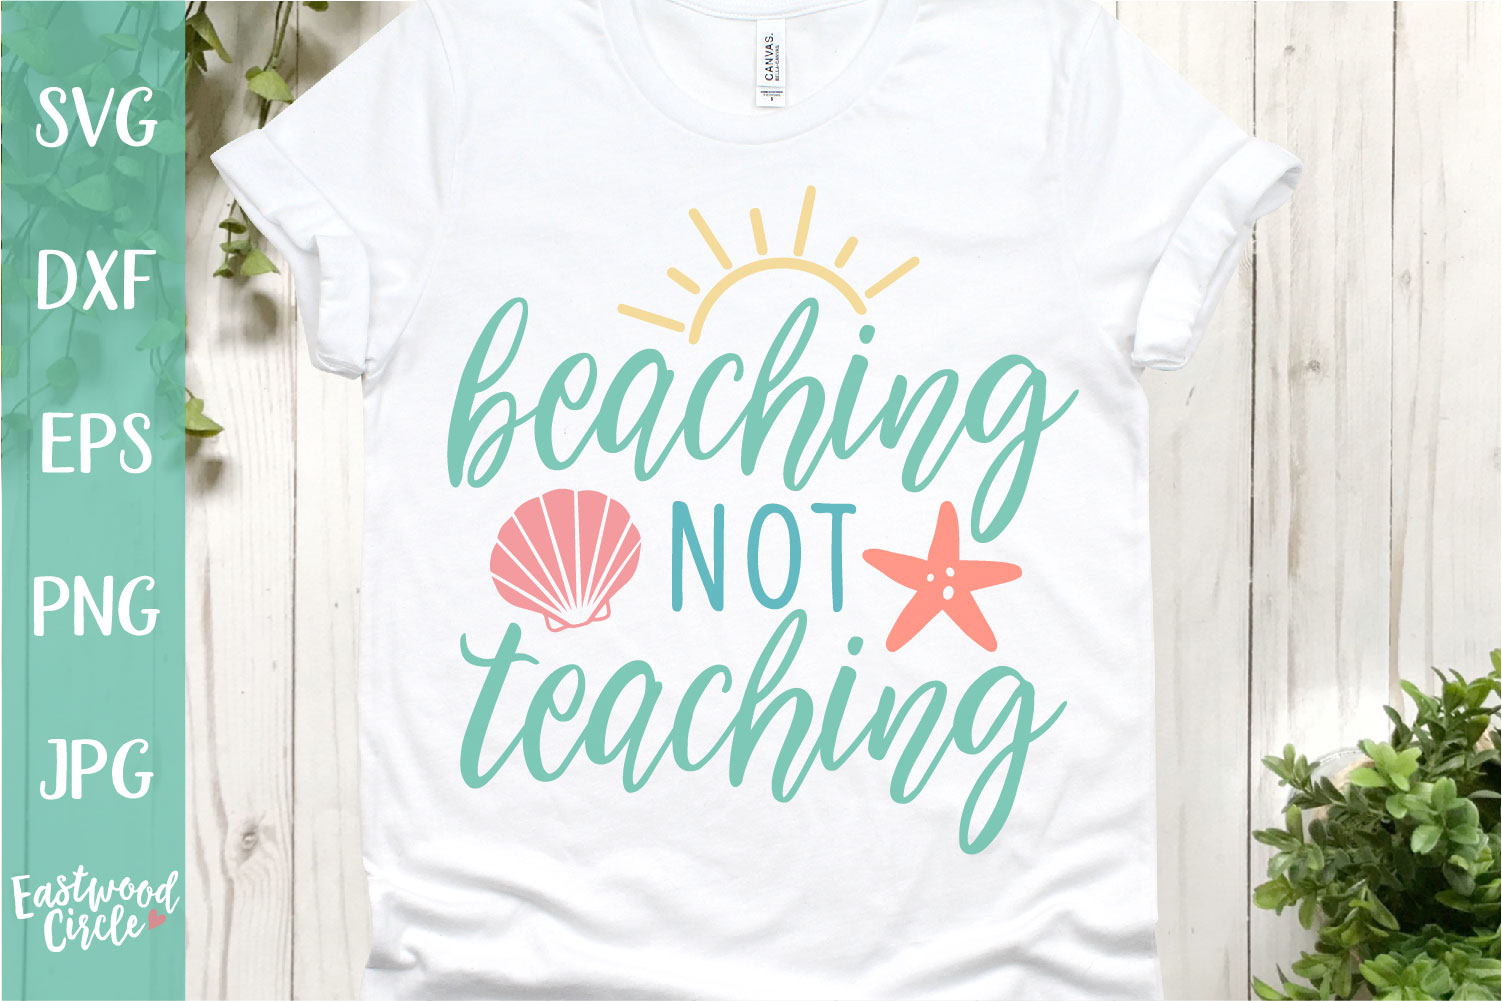 Beaching Not Teaching - A Beach SVG Cut File for Crafters example image 1